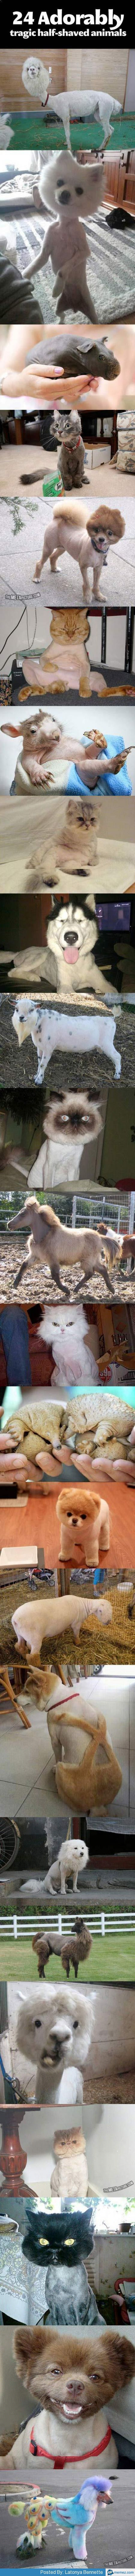 Funny shaved animals